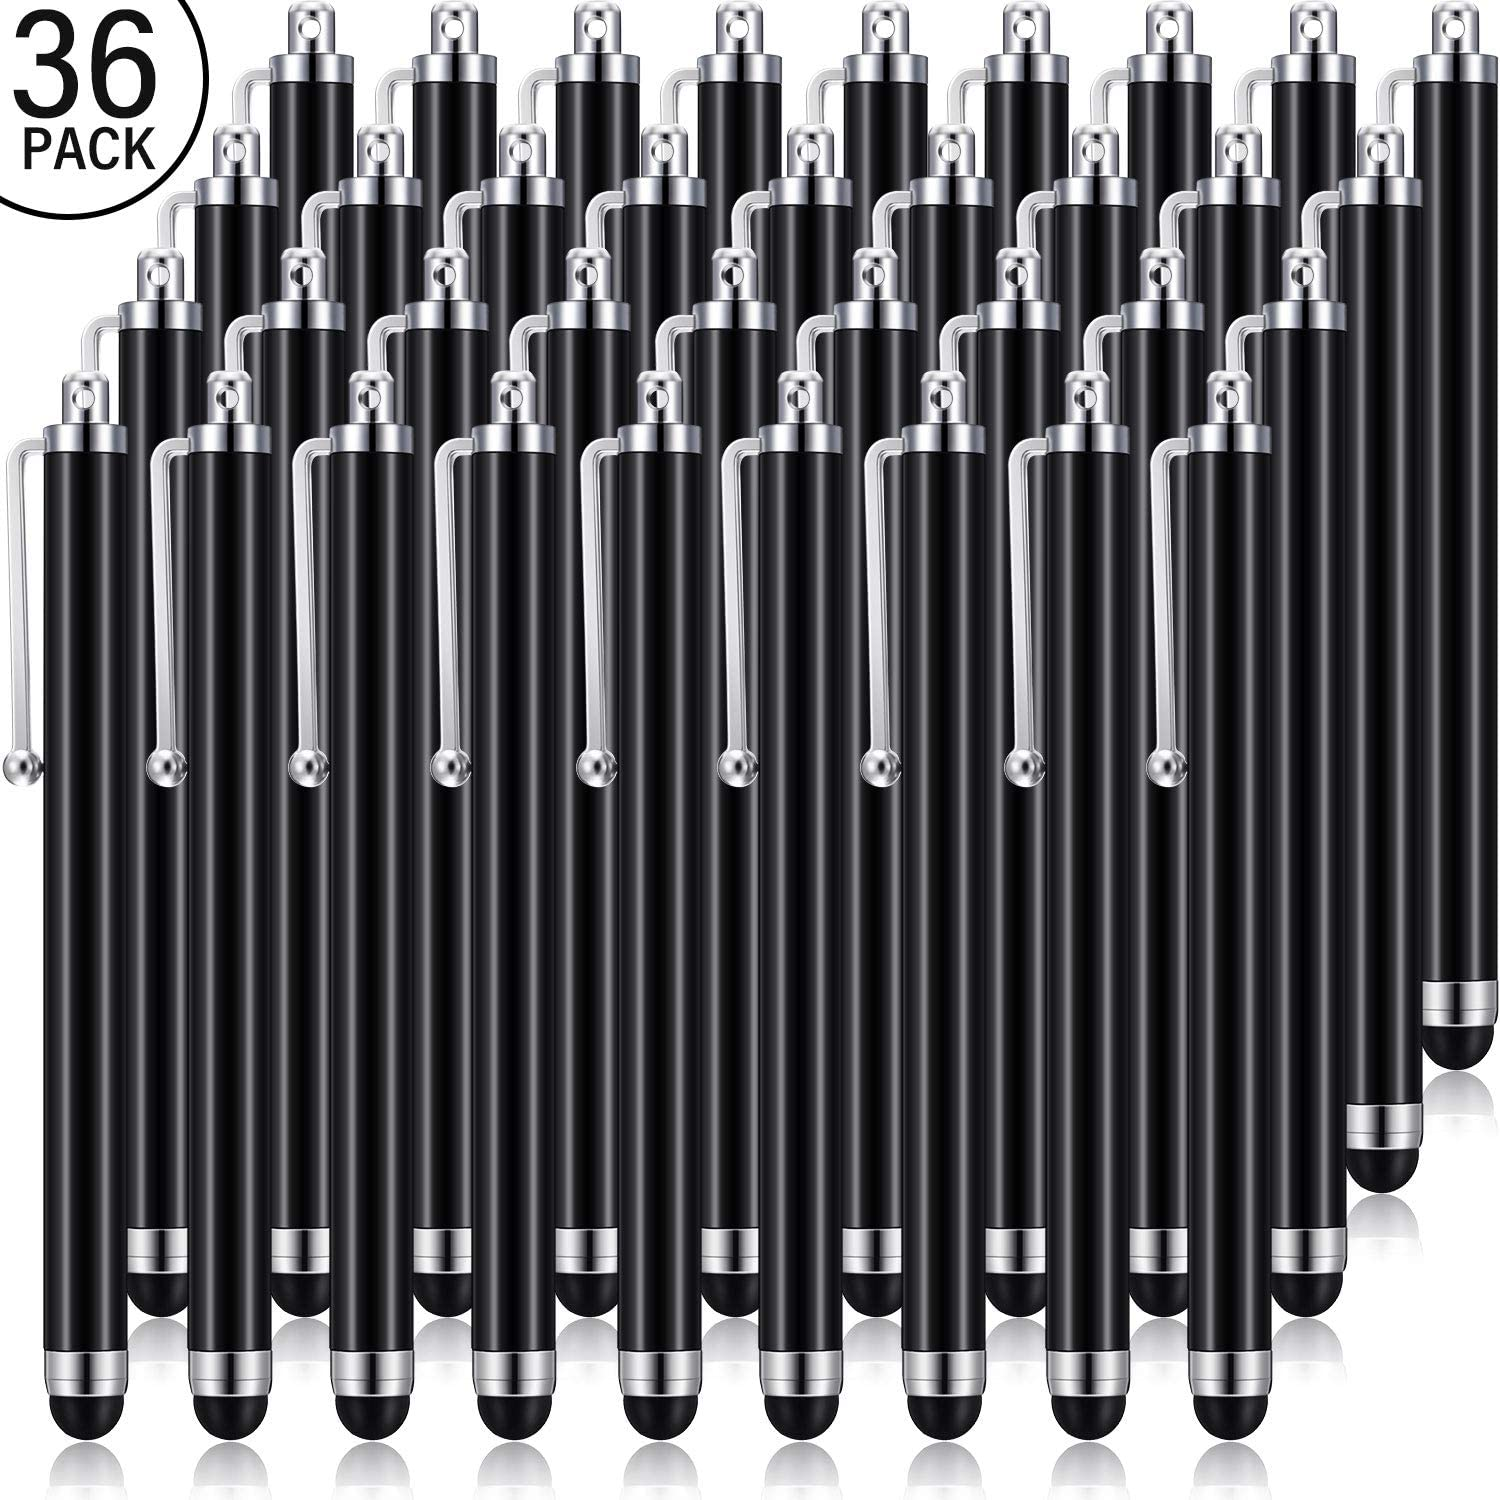 Stylus Pen Set of 36 for Universal Capacitive Touch Screens Devices, Stylus Pens for Touch Screens Devices, Compatible with iPhone, iPad, Tablet (Black)